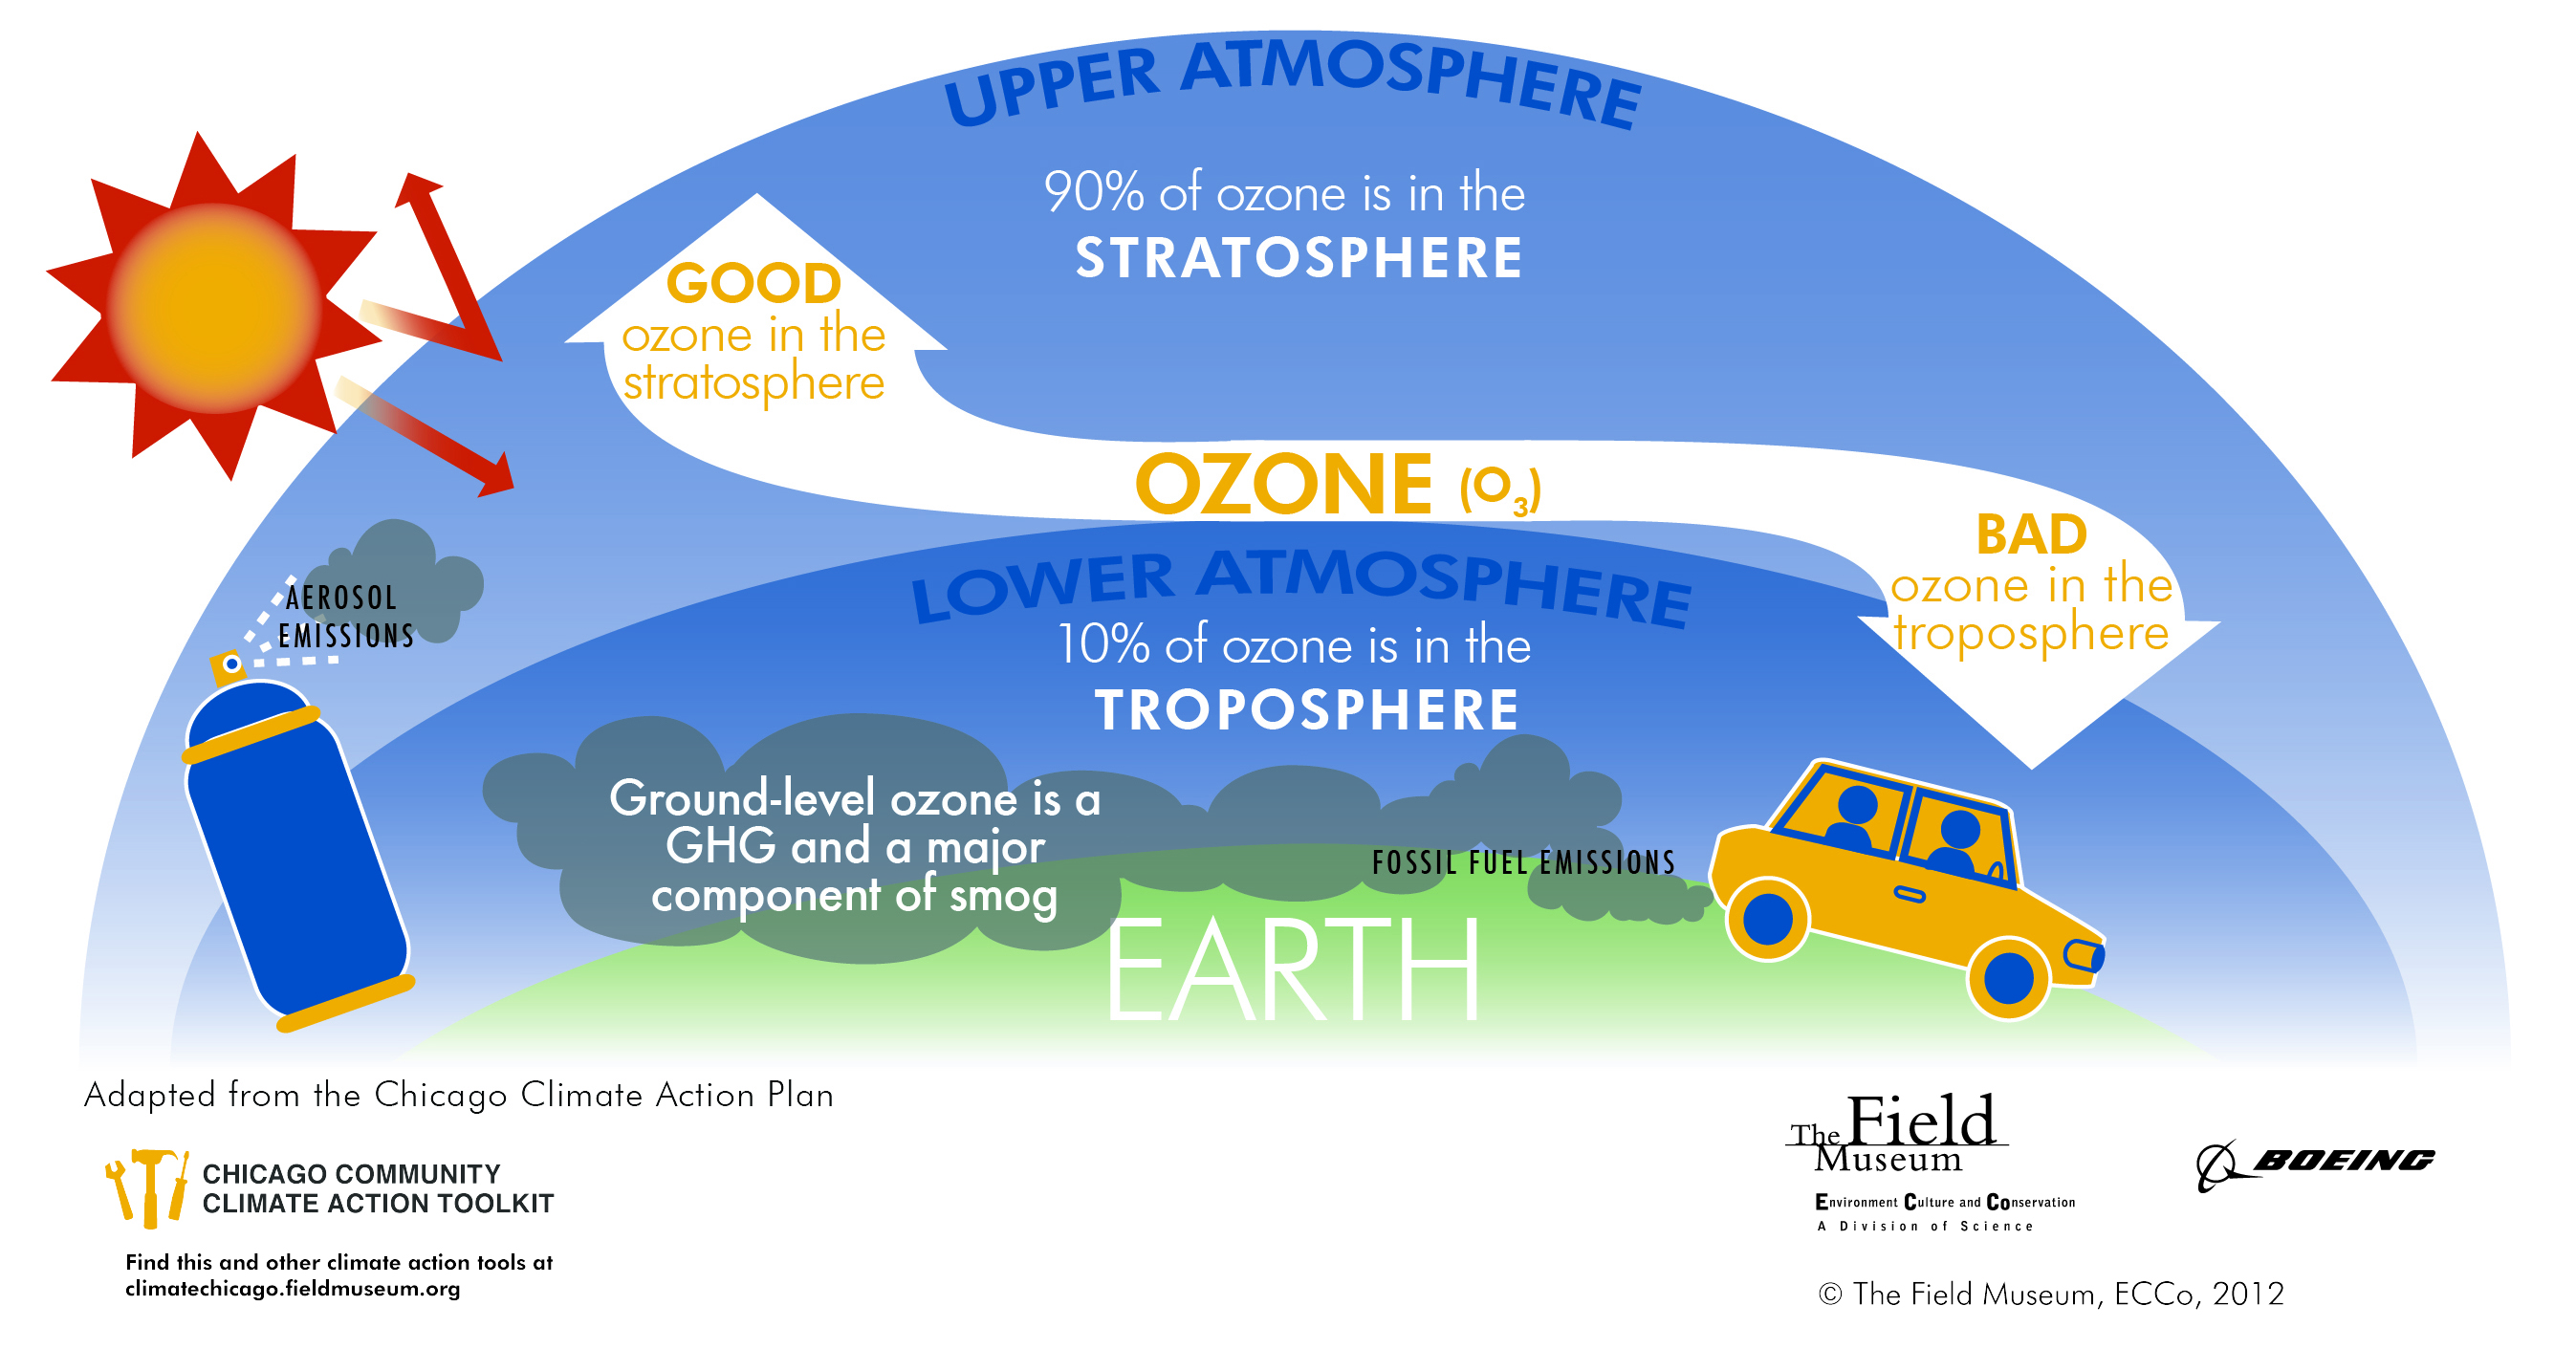 ozone layer diagram clipart best ozone layer diagram clipart best faqs